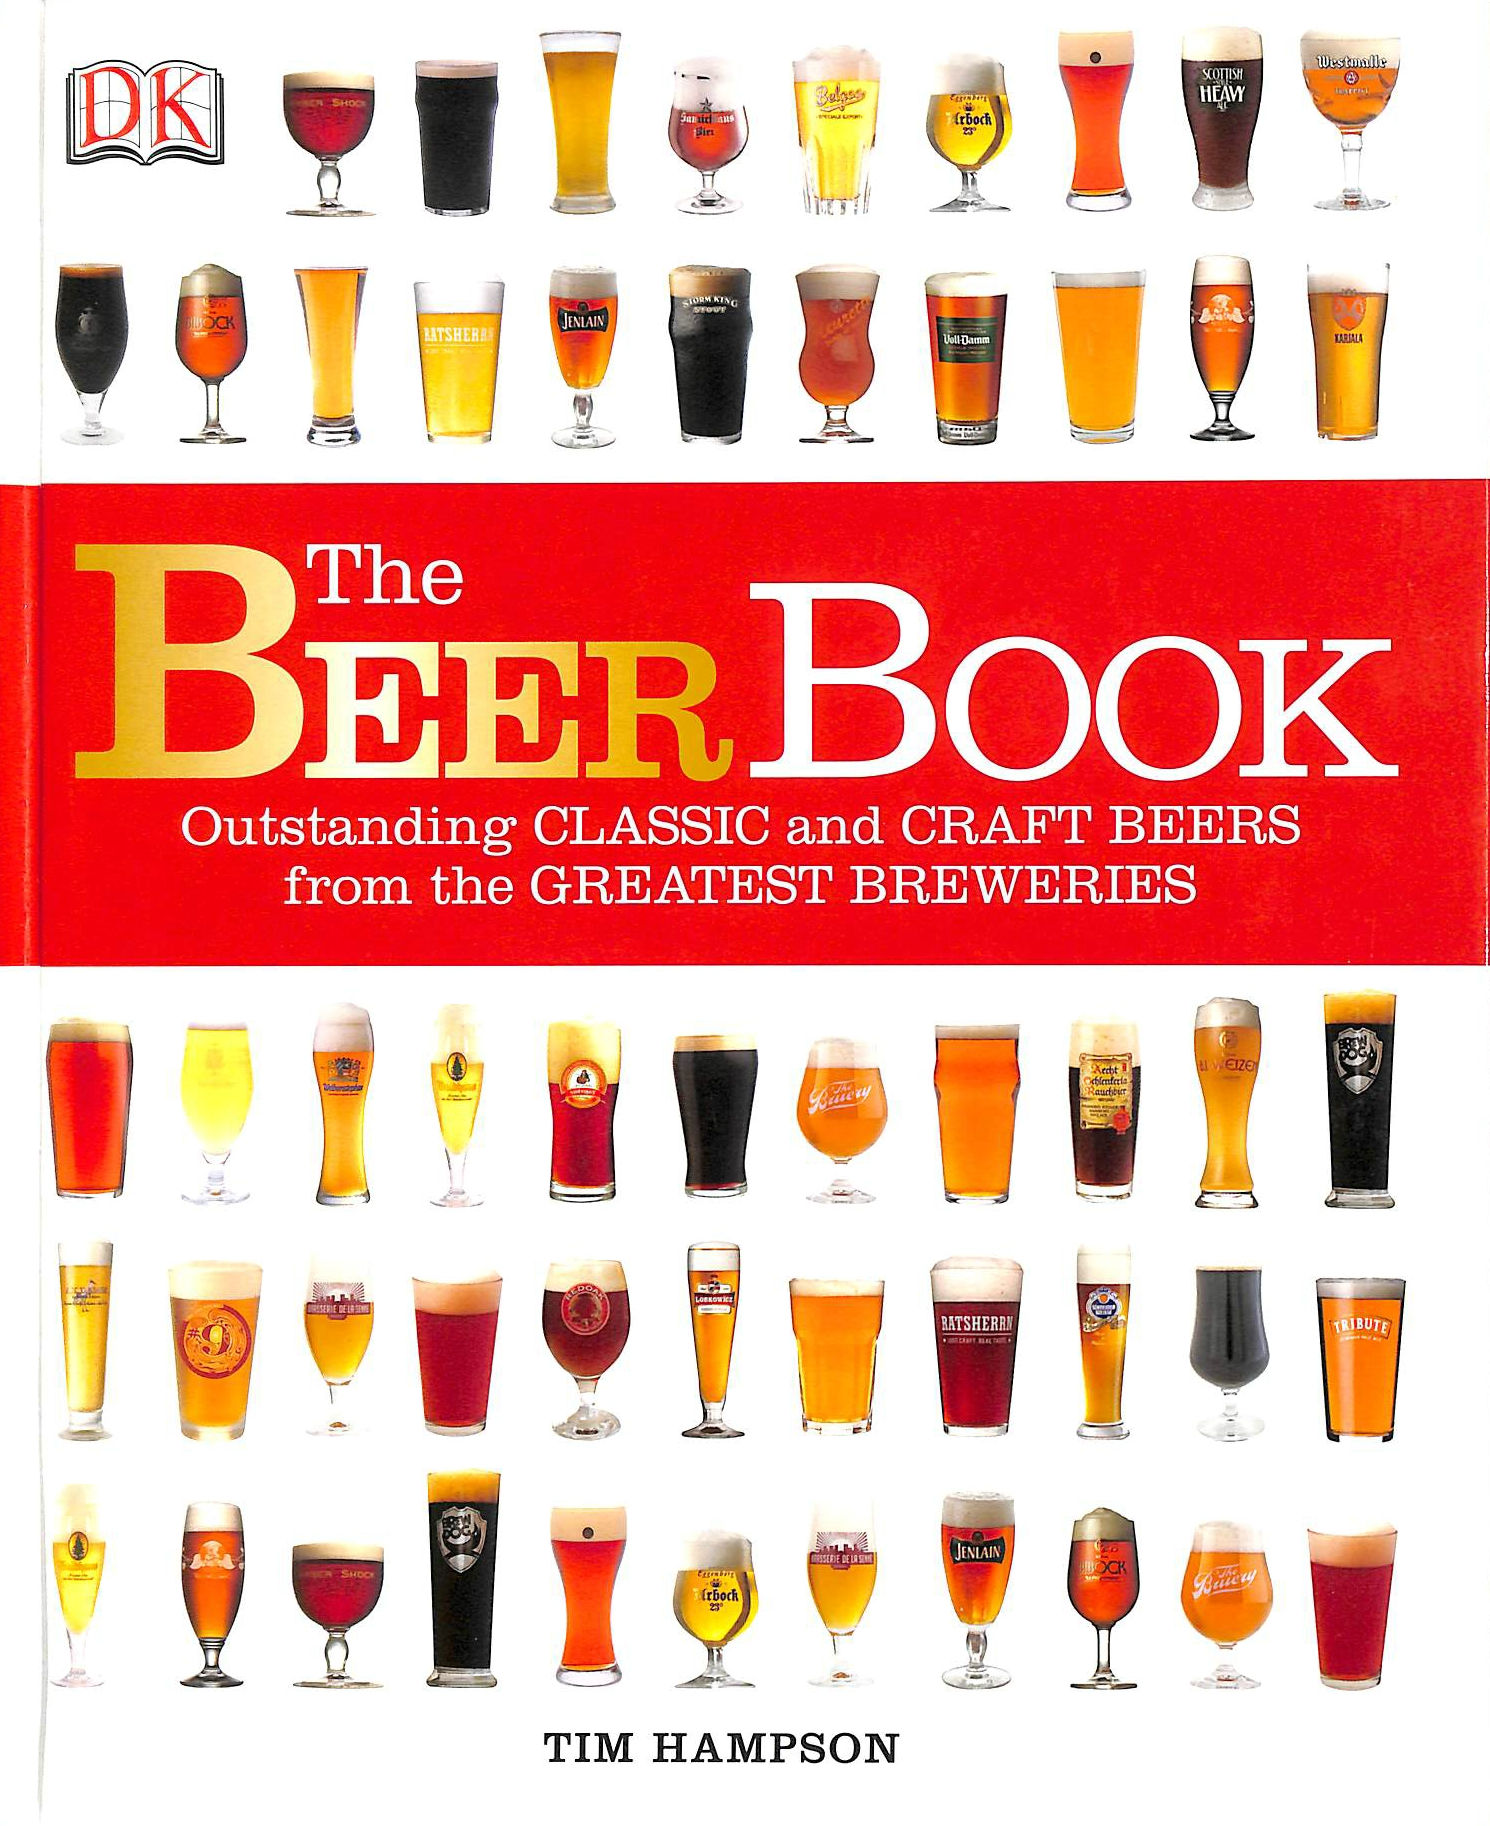 Image for The Beer Book | Outstanding Classic and Craft Beers from the Greatest Breweries